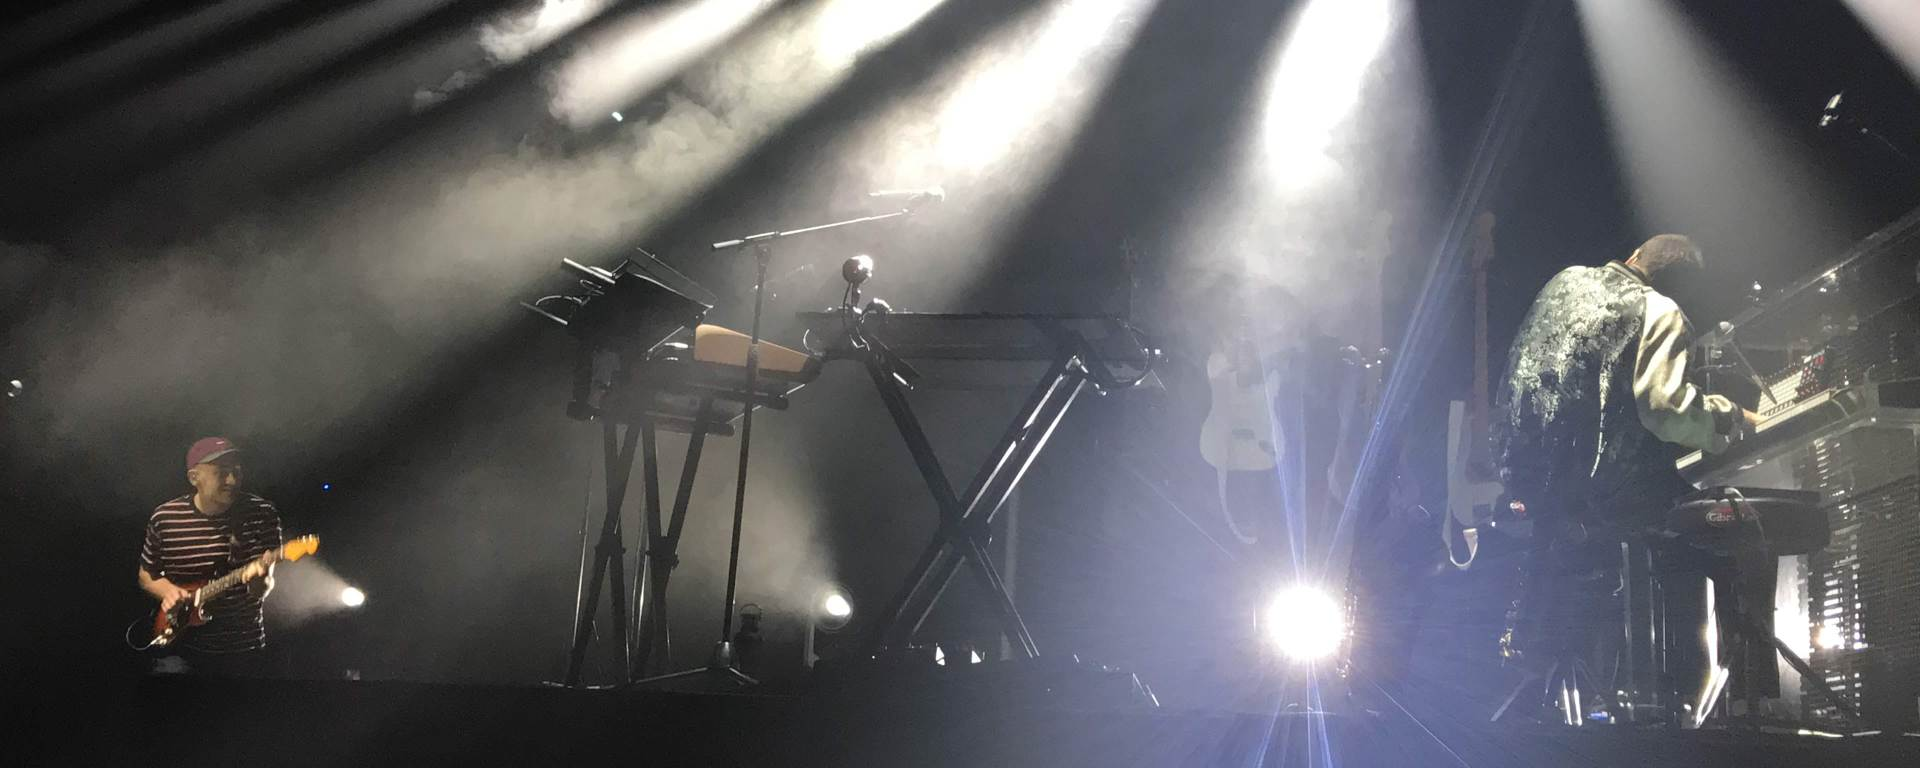 FKJ and Tom Misch live at O2 Academy Brixton 10 October 2019